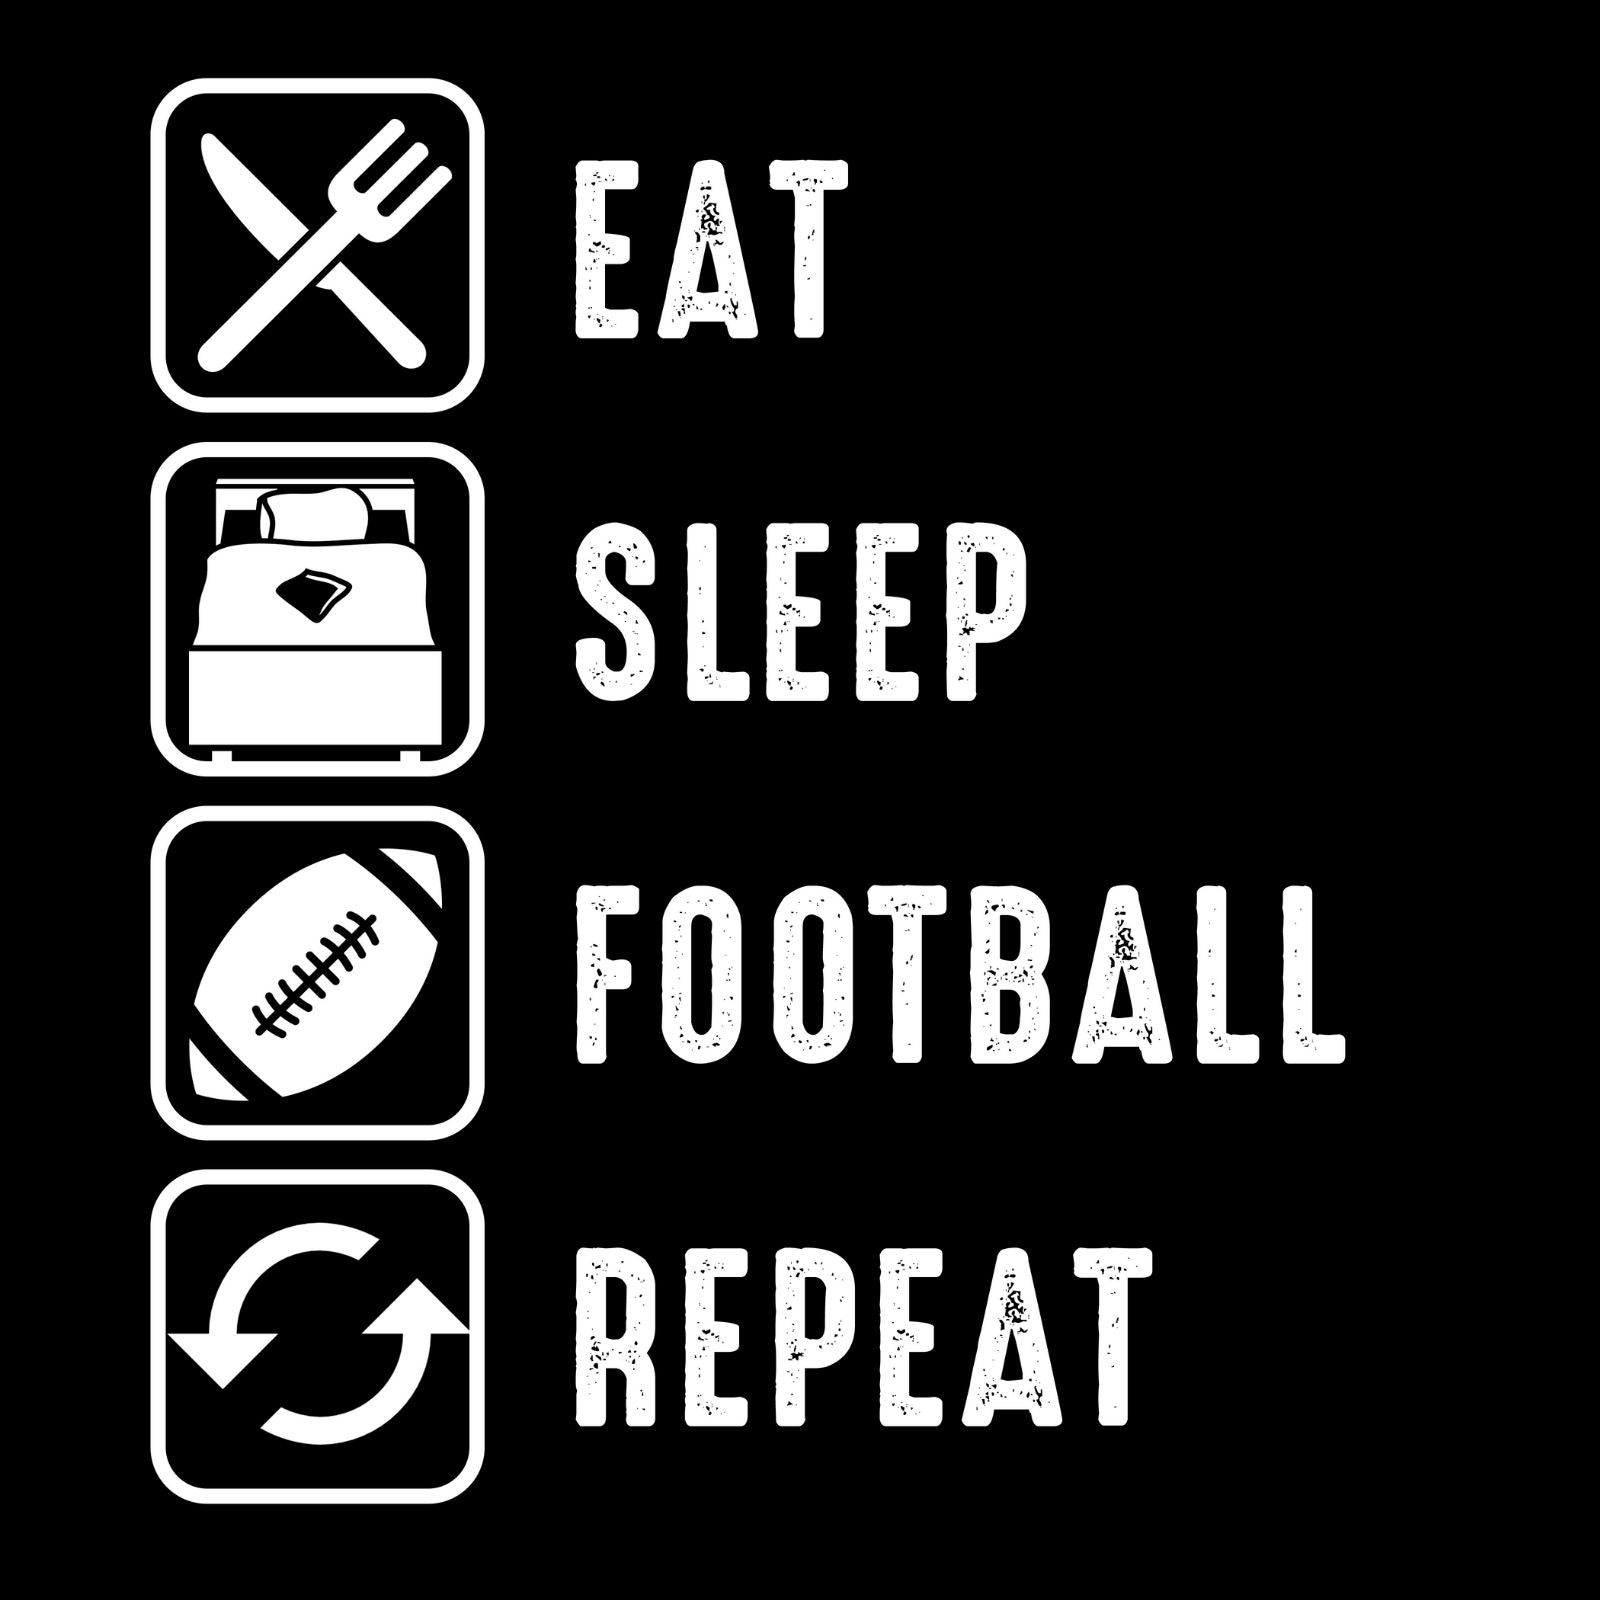 Eat Sleep Football Repeat - Bastard Graphics